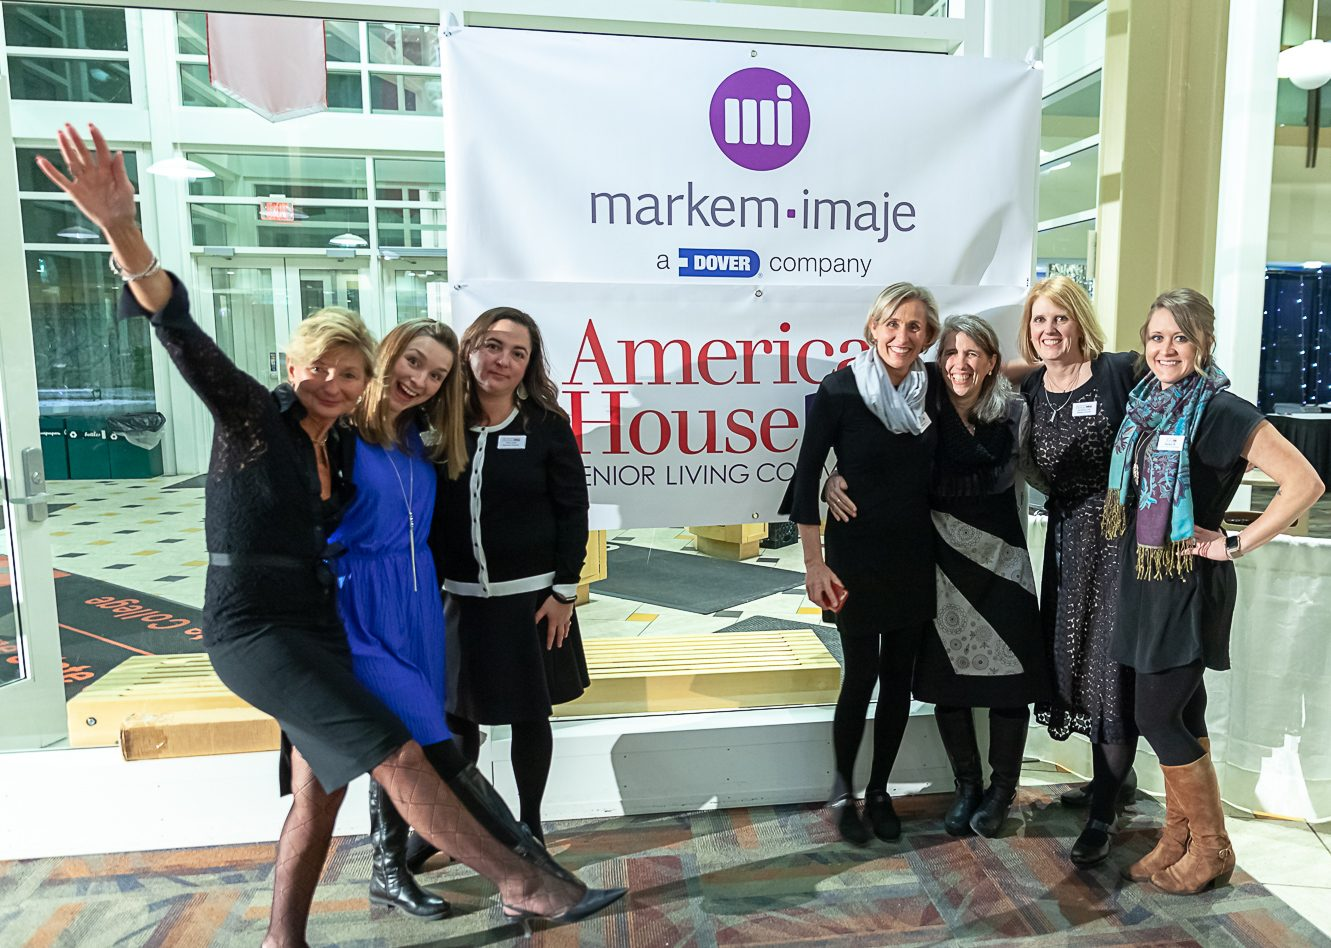 American House group with banner